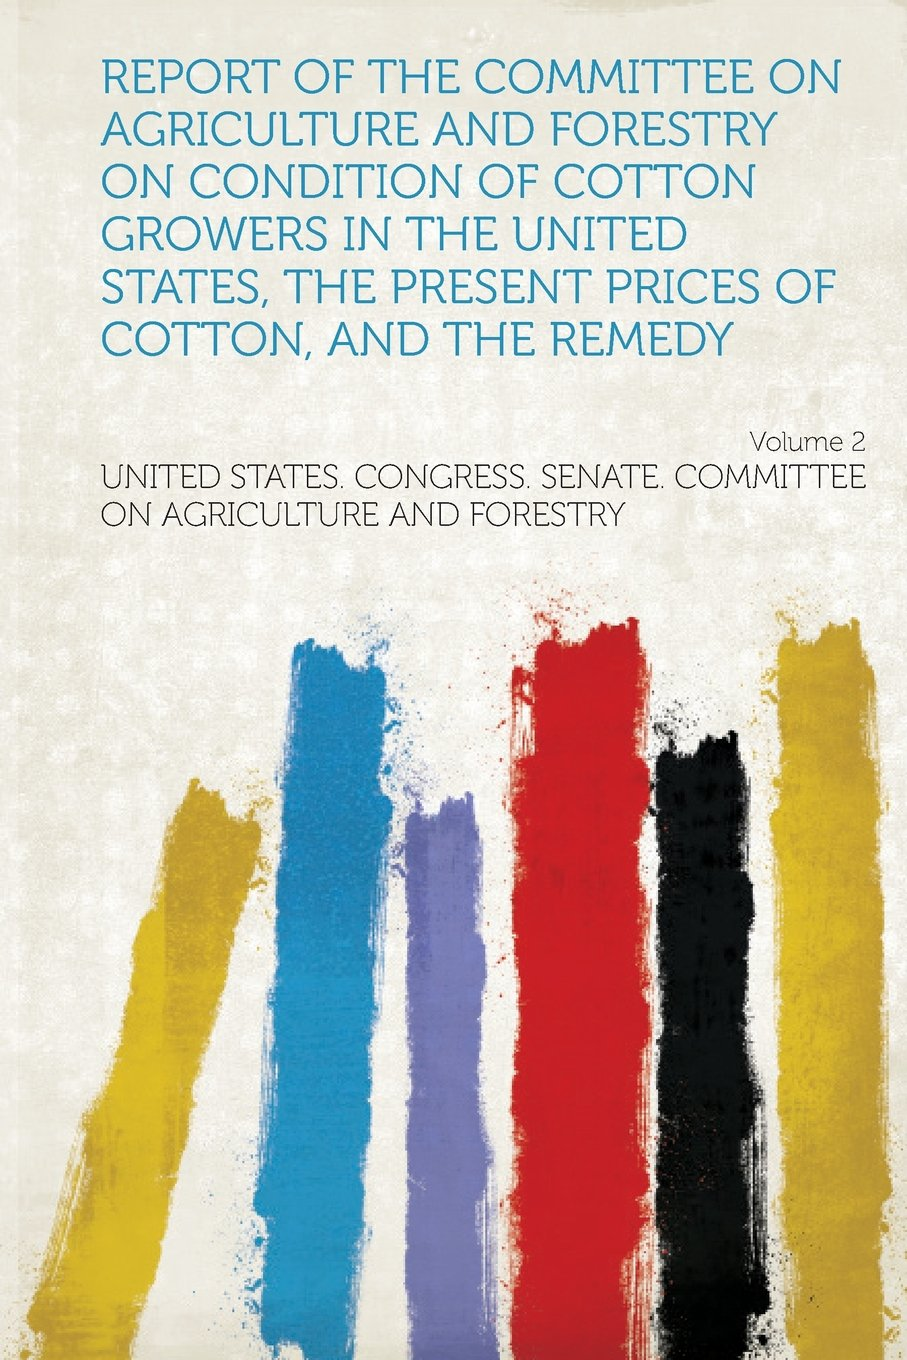 Download Report of the Committee on Agriculture and Forestry on Condition of Cotton Growers in the United States, the Present Prices of Cotton, and the Remedy Volume 2 pdf epub